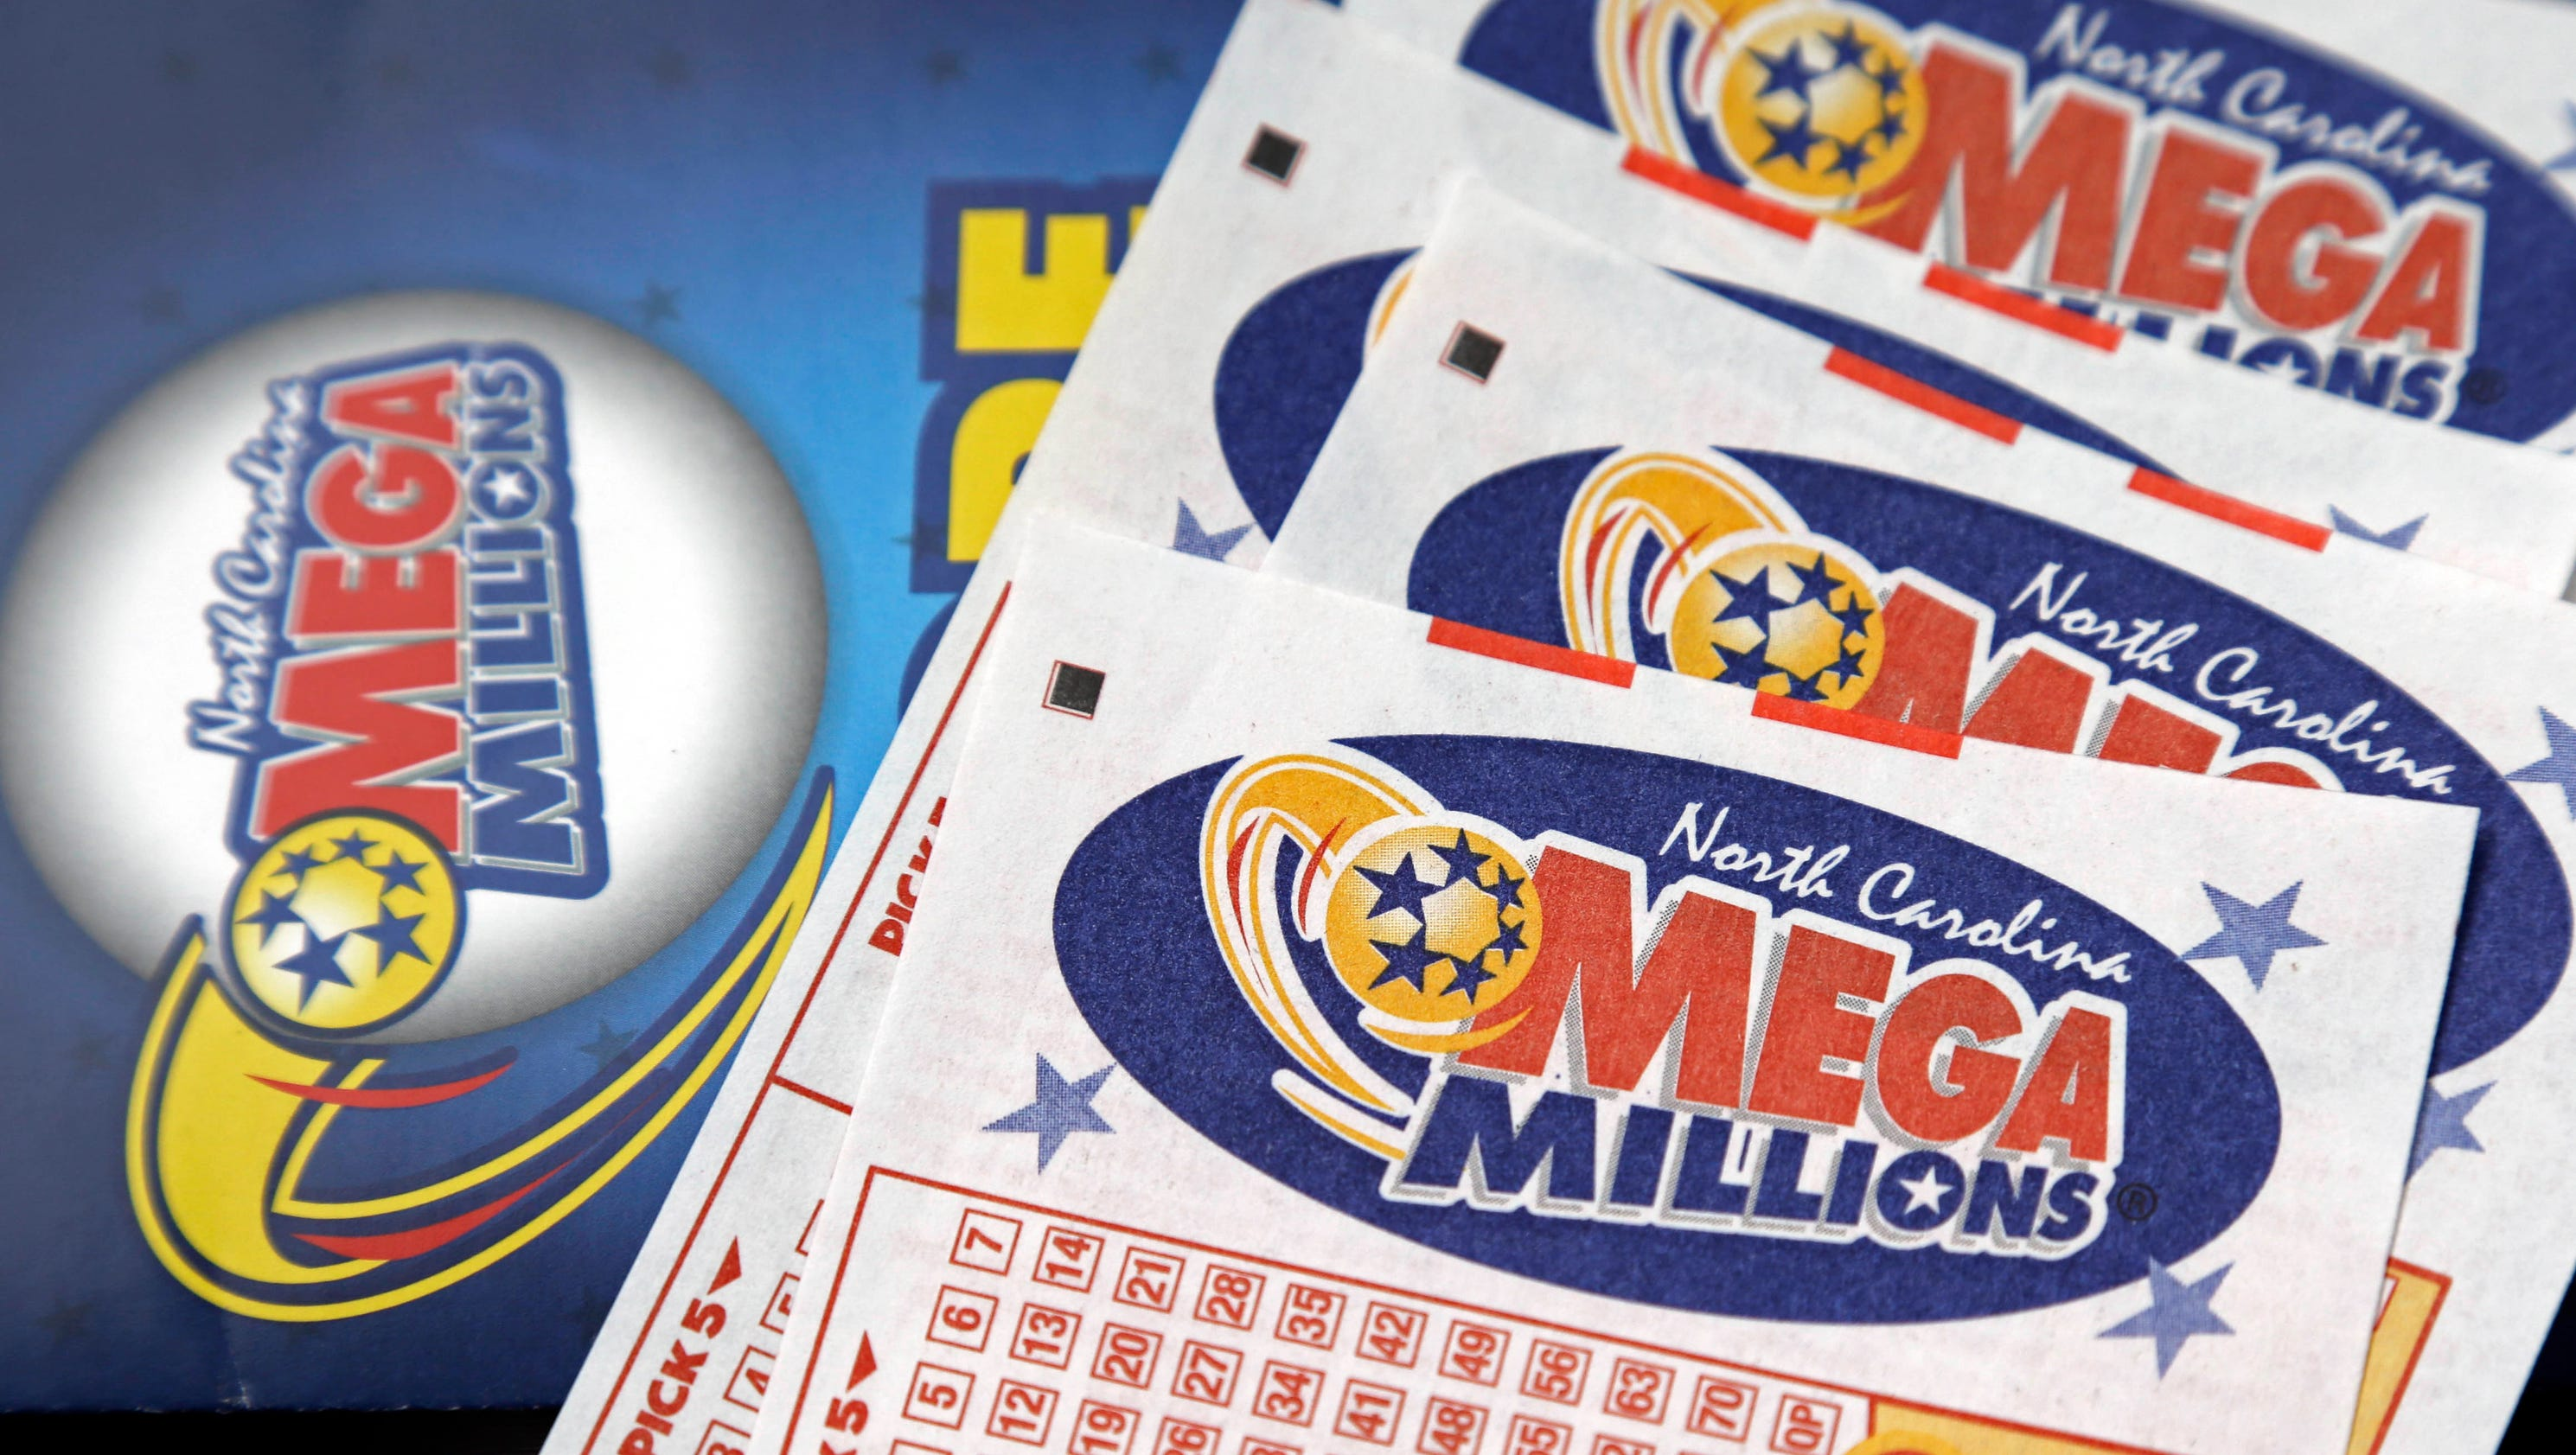 Winning $393M Mega Millions Ticket Sold In Illinois